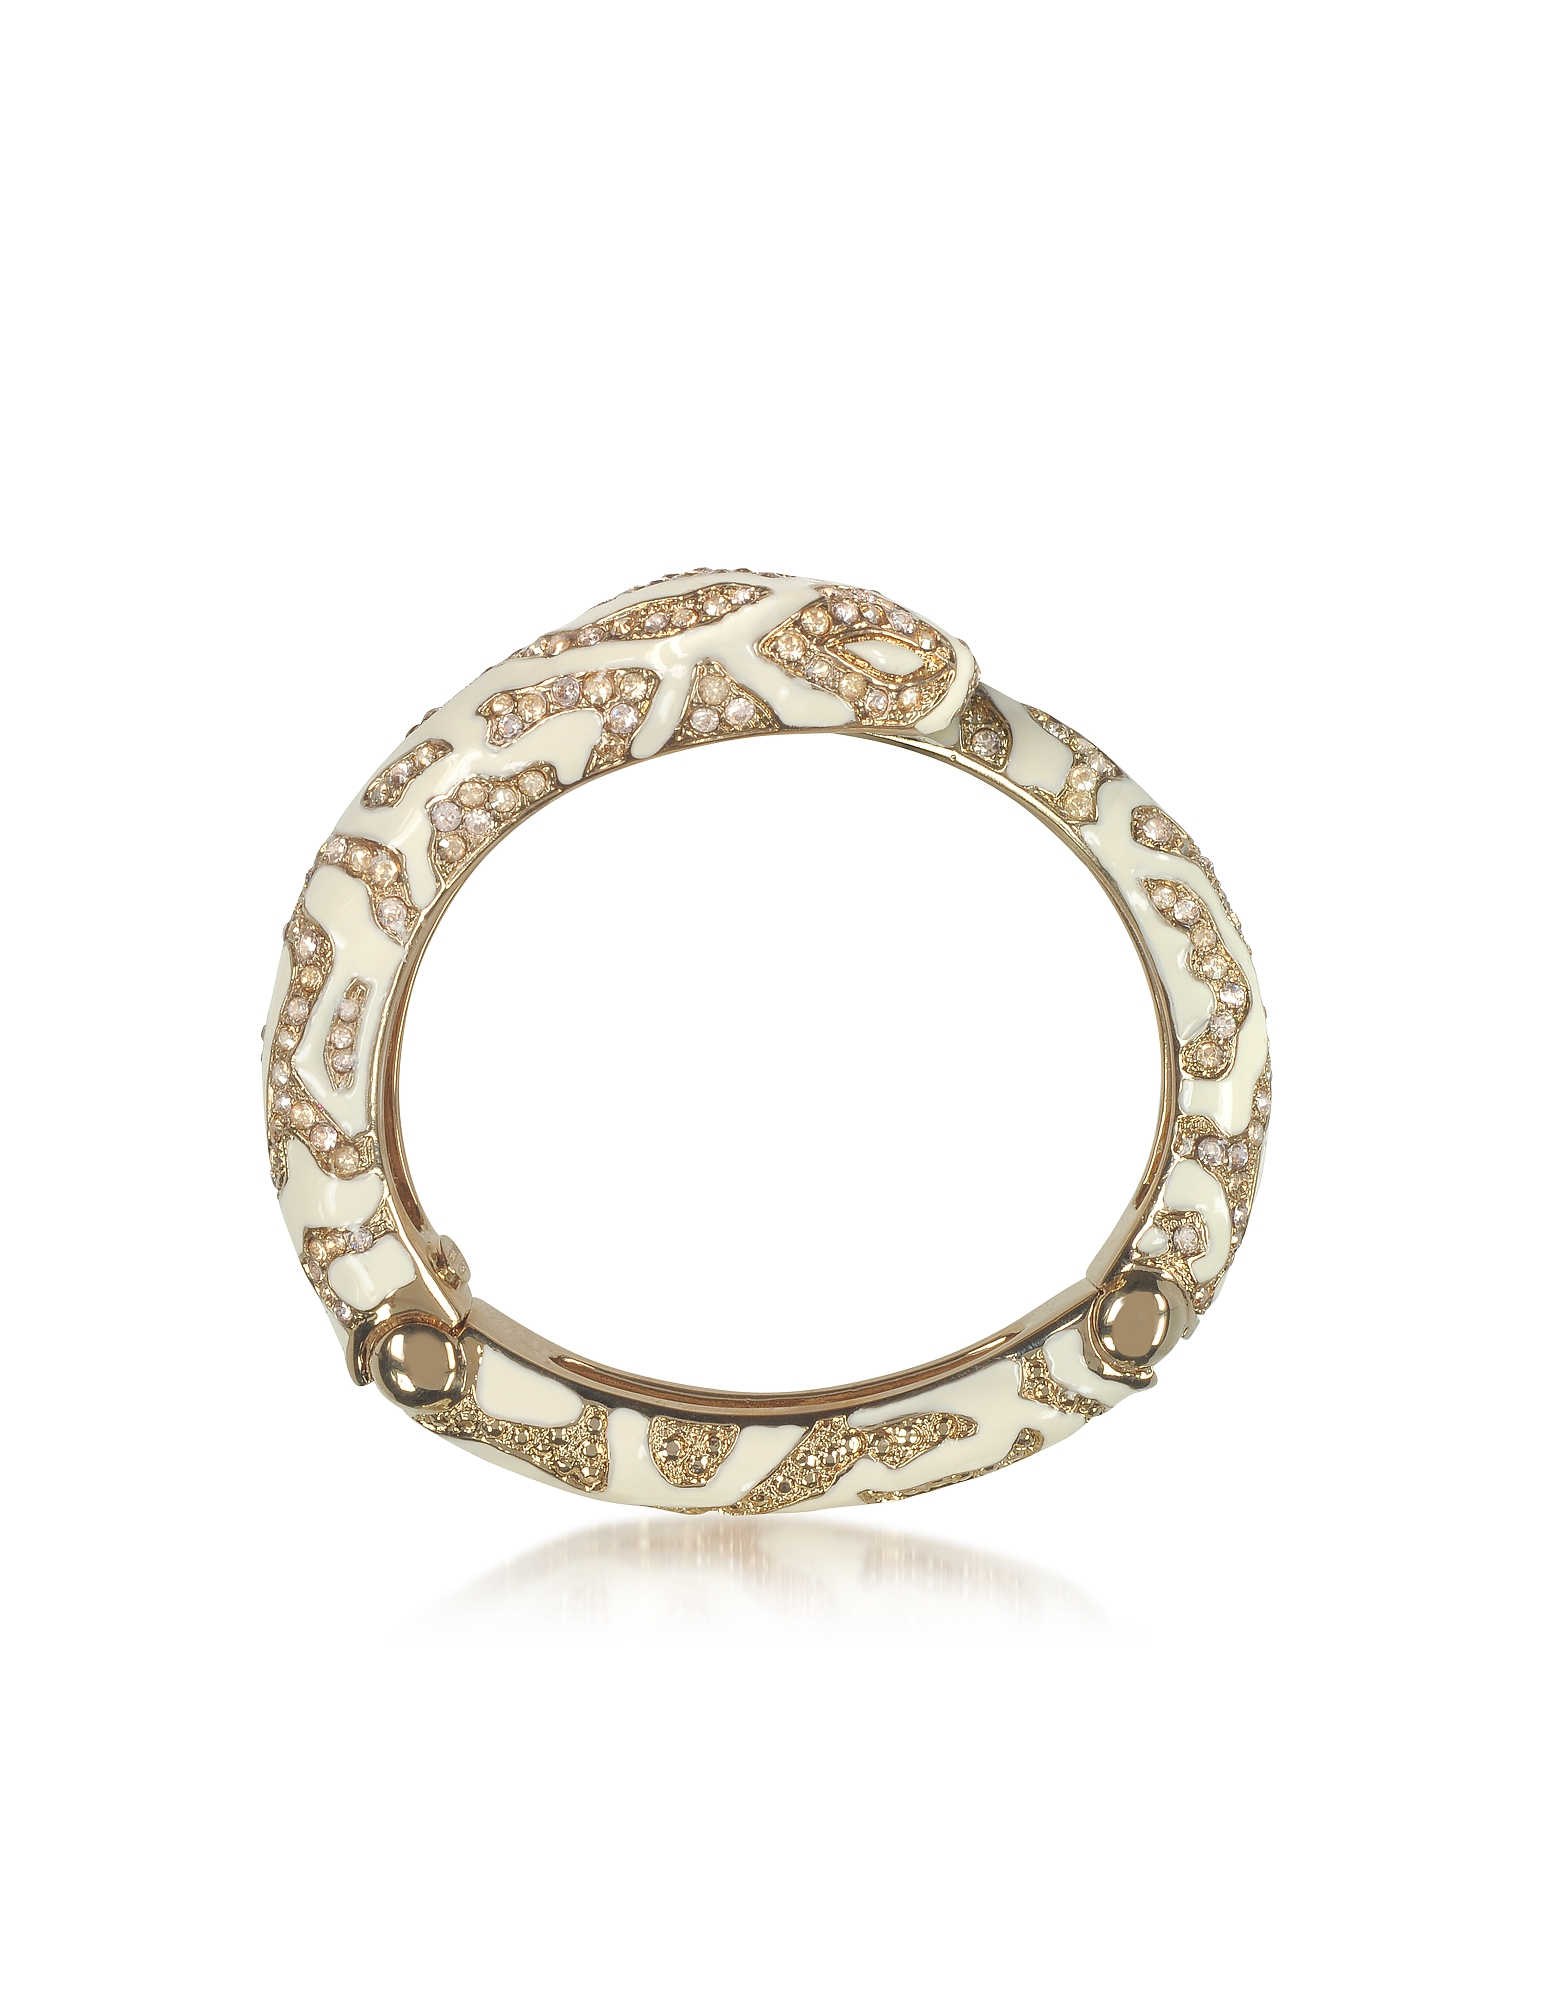 Roberto Cavalli Bracelets, Golden Brass and Ivory Enamel Snake Bangle w/Crystals